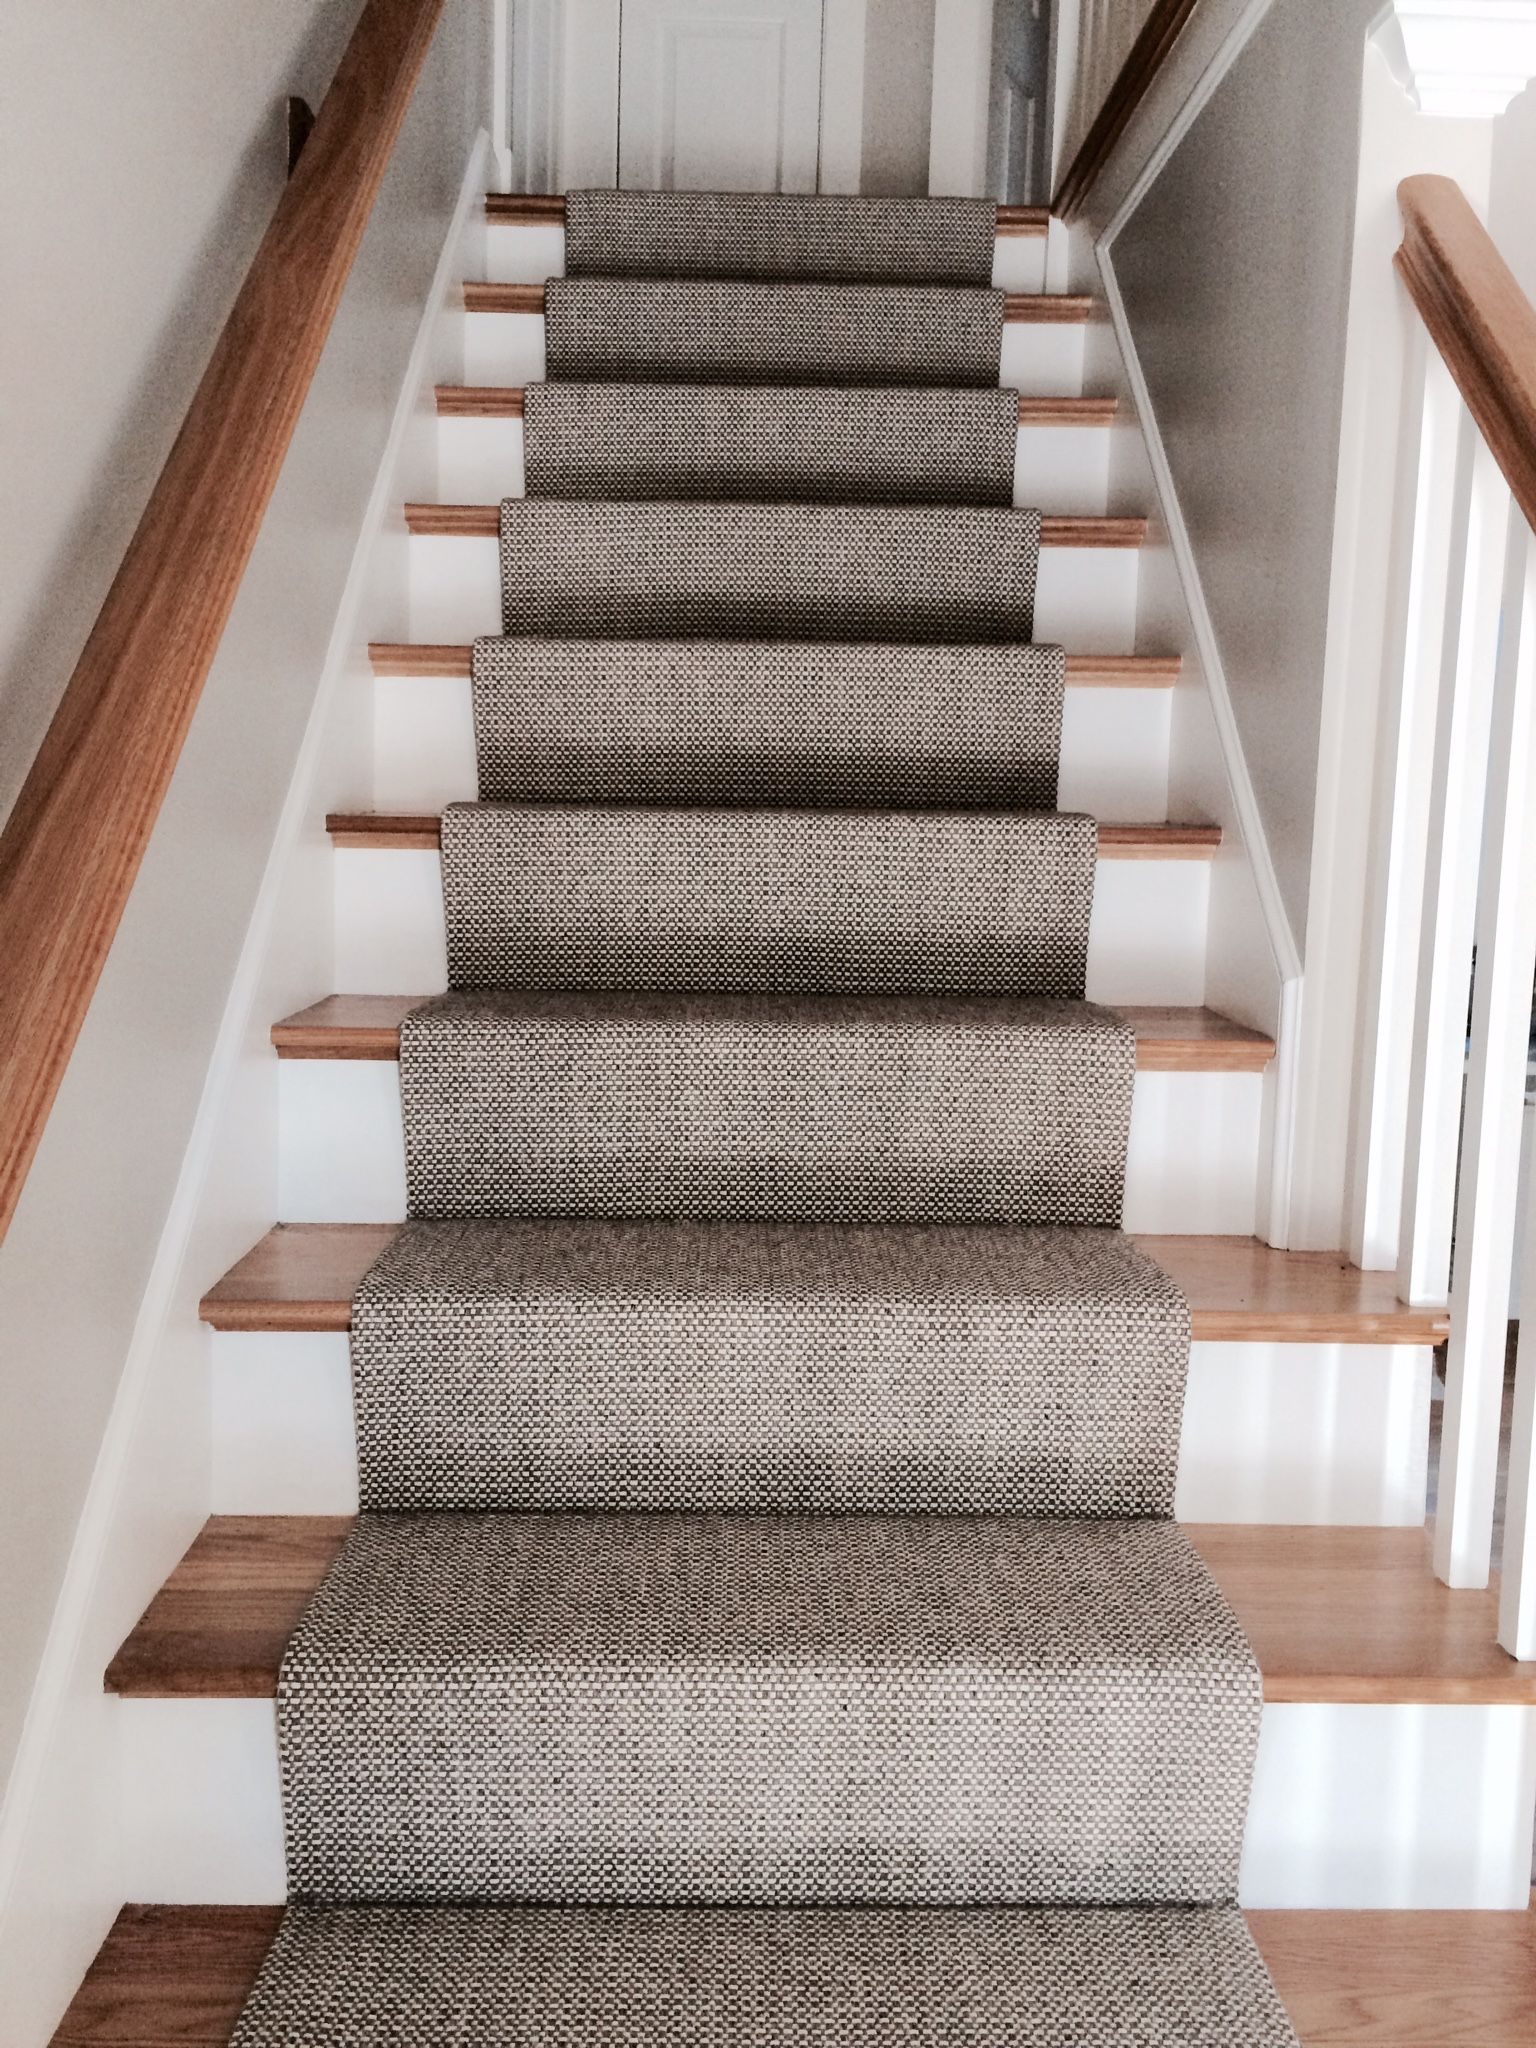 merida flat woven wool stair runner by  stitch staircases and house - merida flat woven wool stair runner by carpet